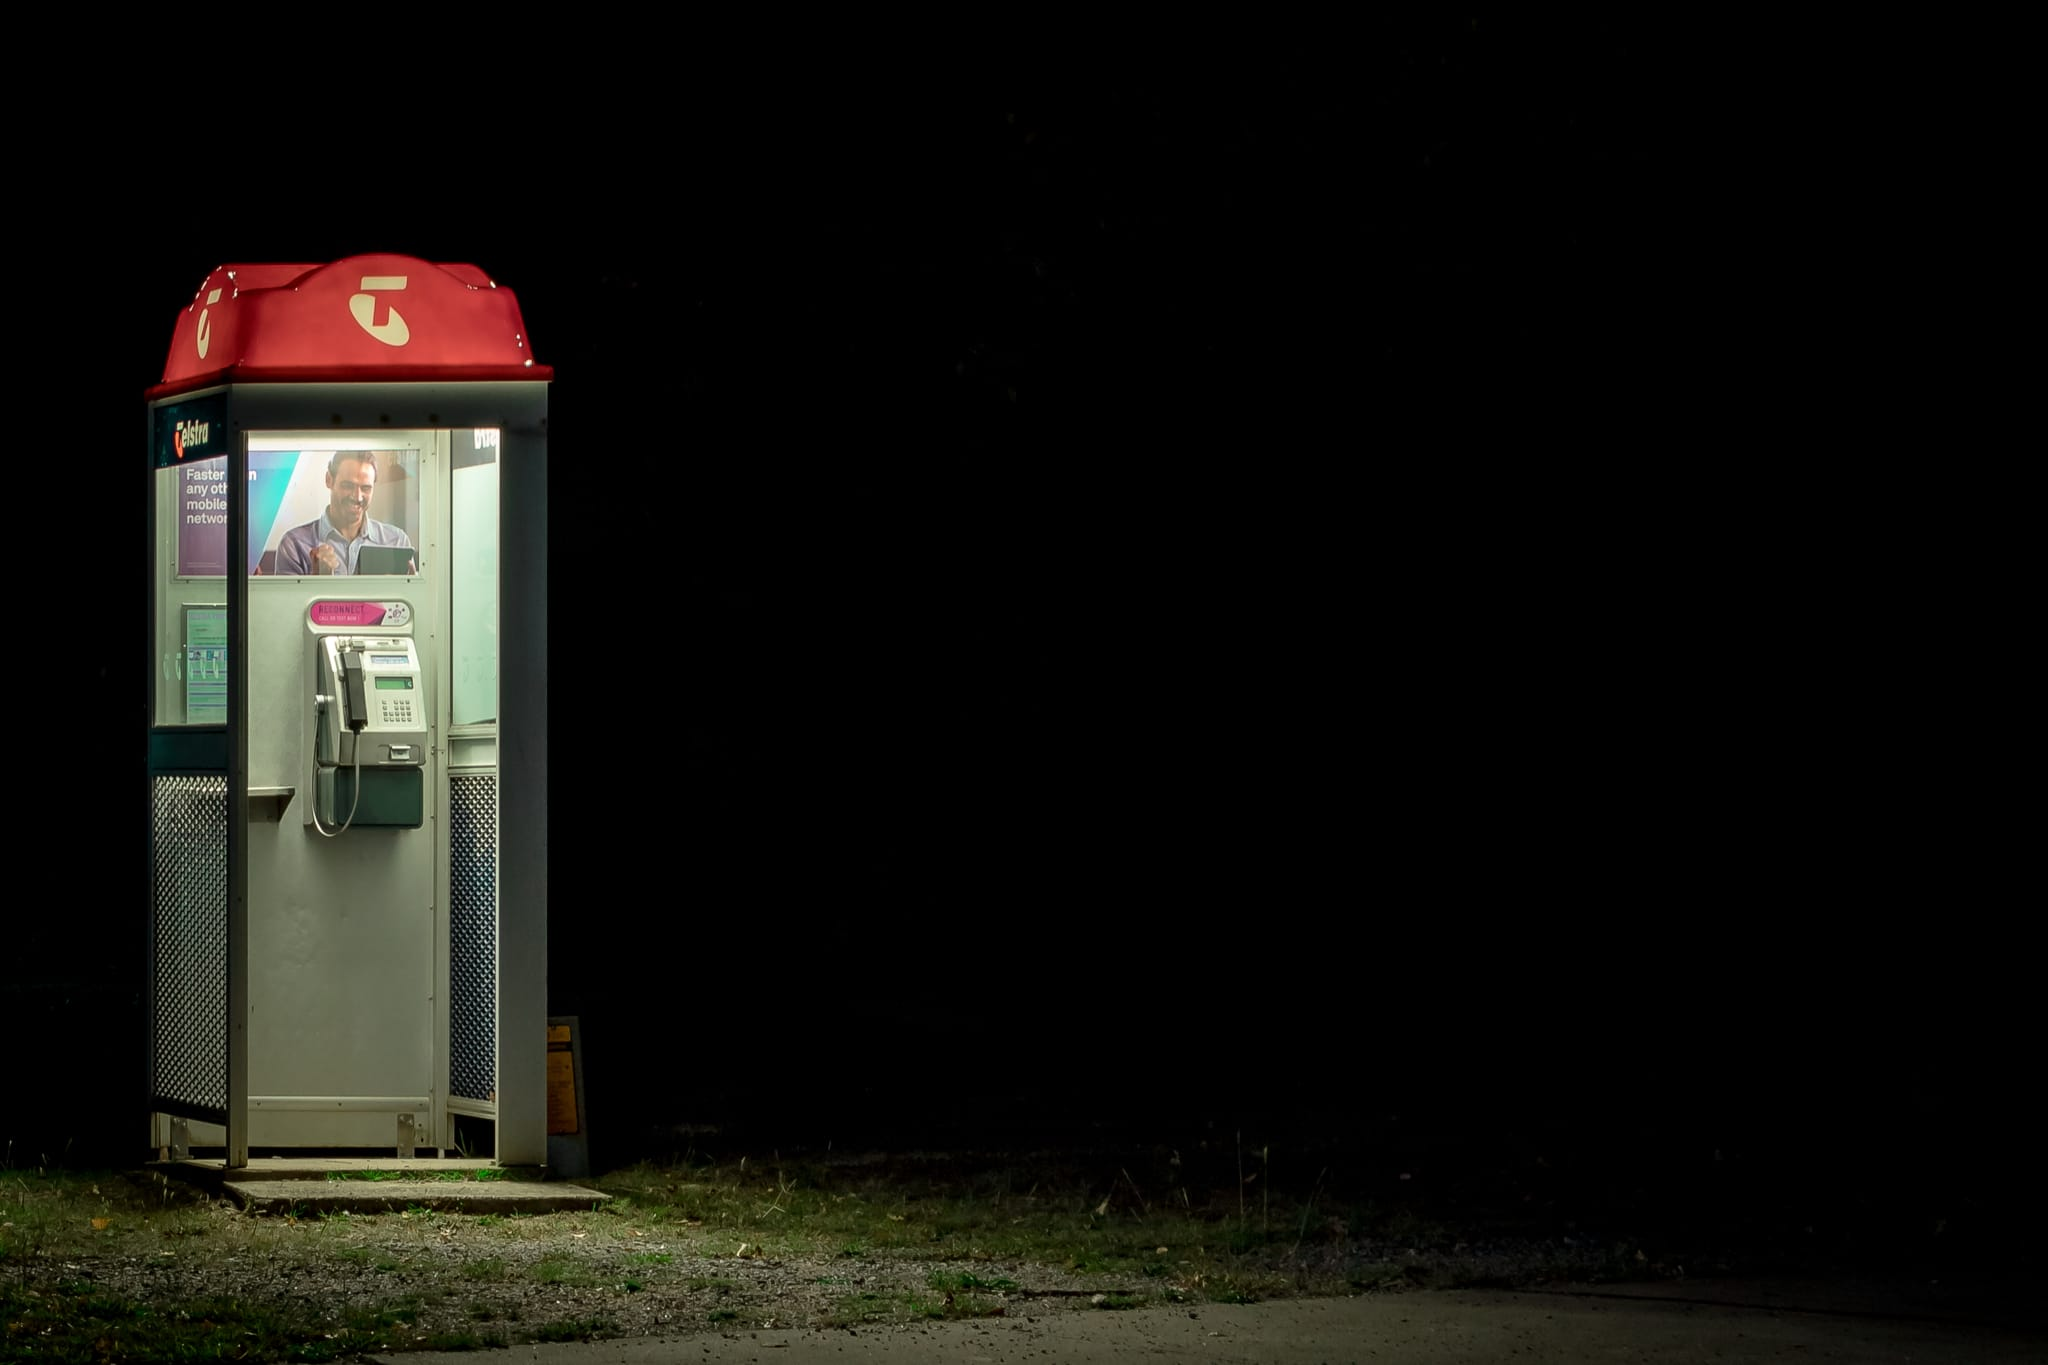 a phone booth in darkness - lost collective